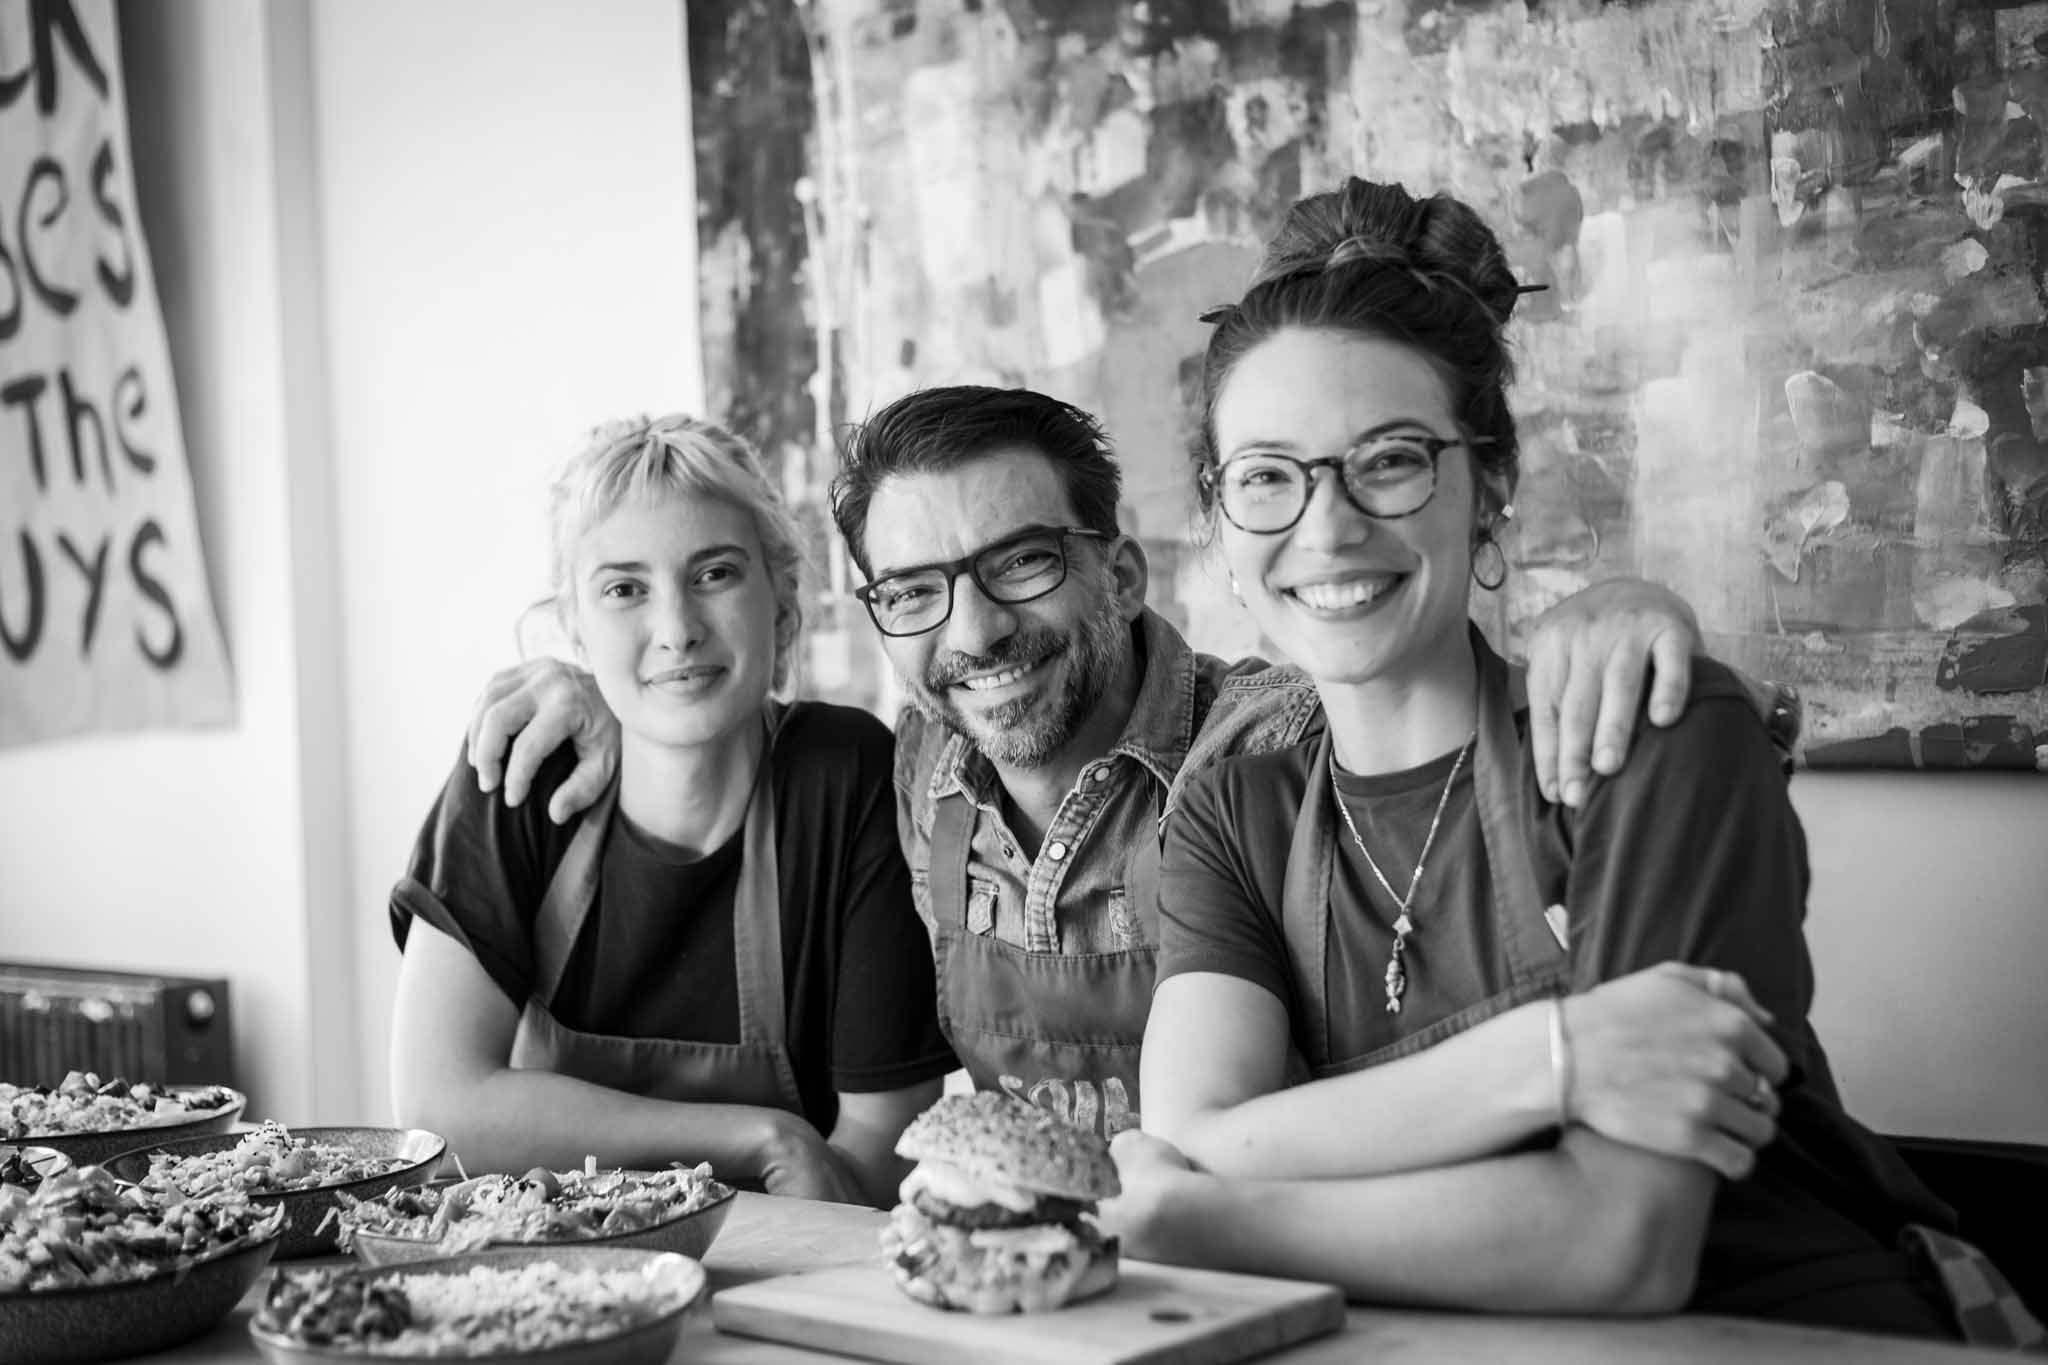 Portrait of restaurant owner with staff members in a restaurant